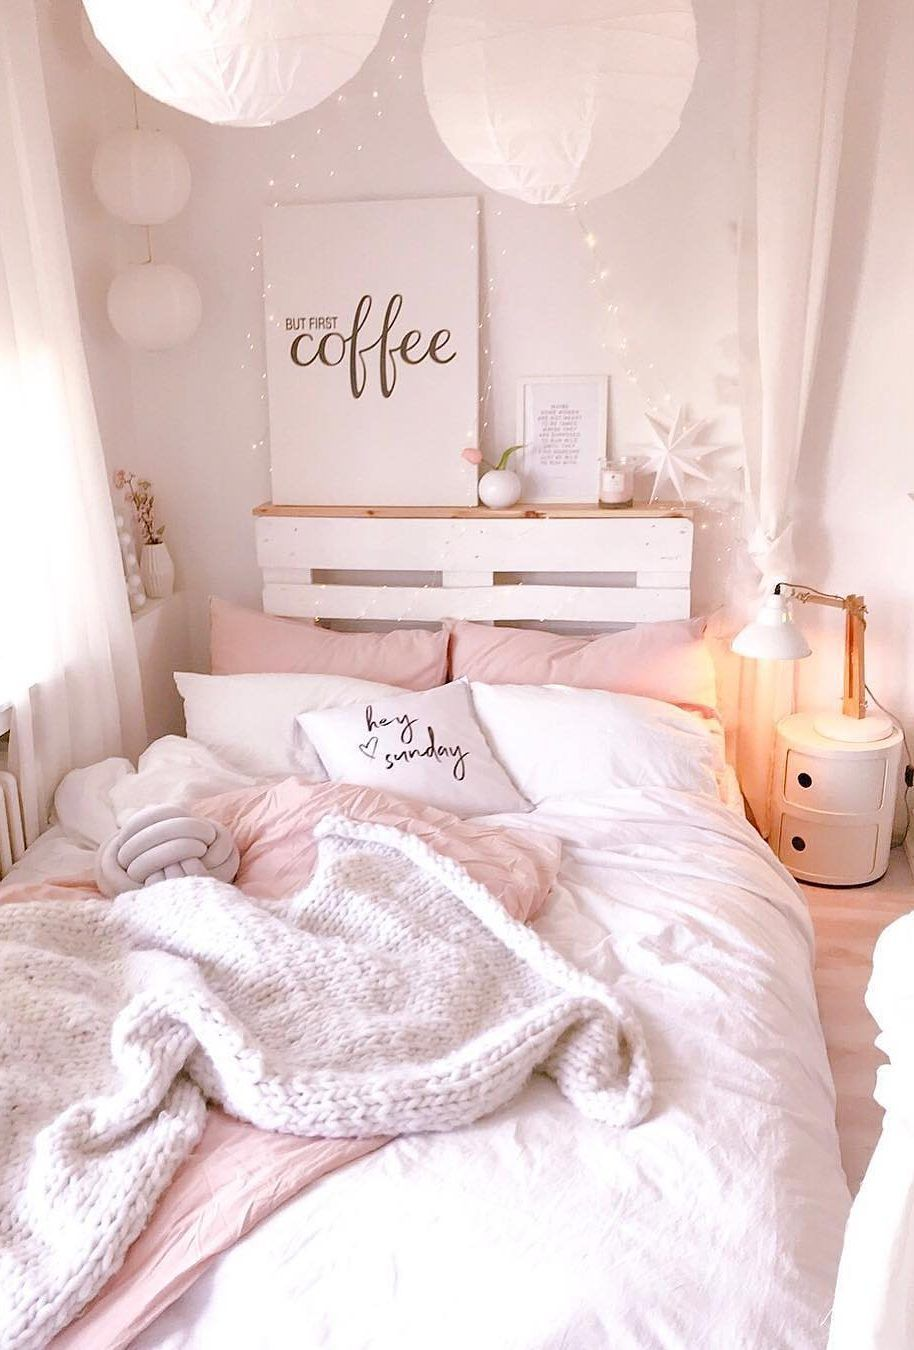 40 Most Popular And Amazing Bedroom Design Ideas For This Year Part 5 Bedroom Decor For Women Room Inspiration Bedroom Girly Bedroom Most popular first home bedroom ideas